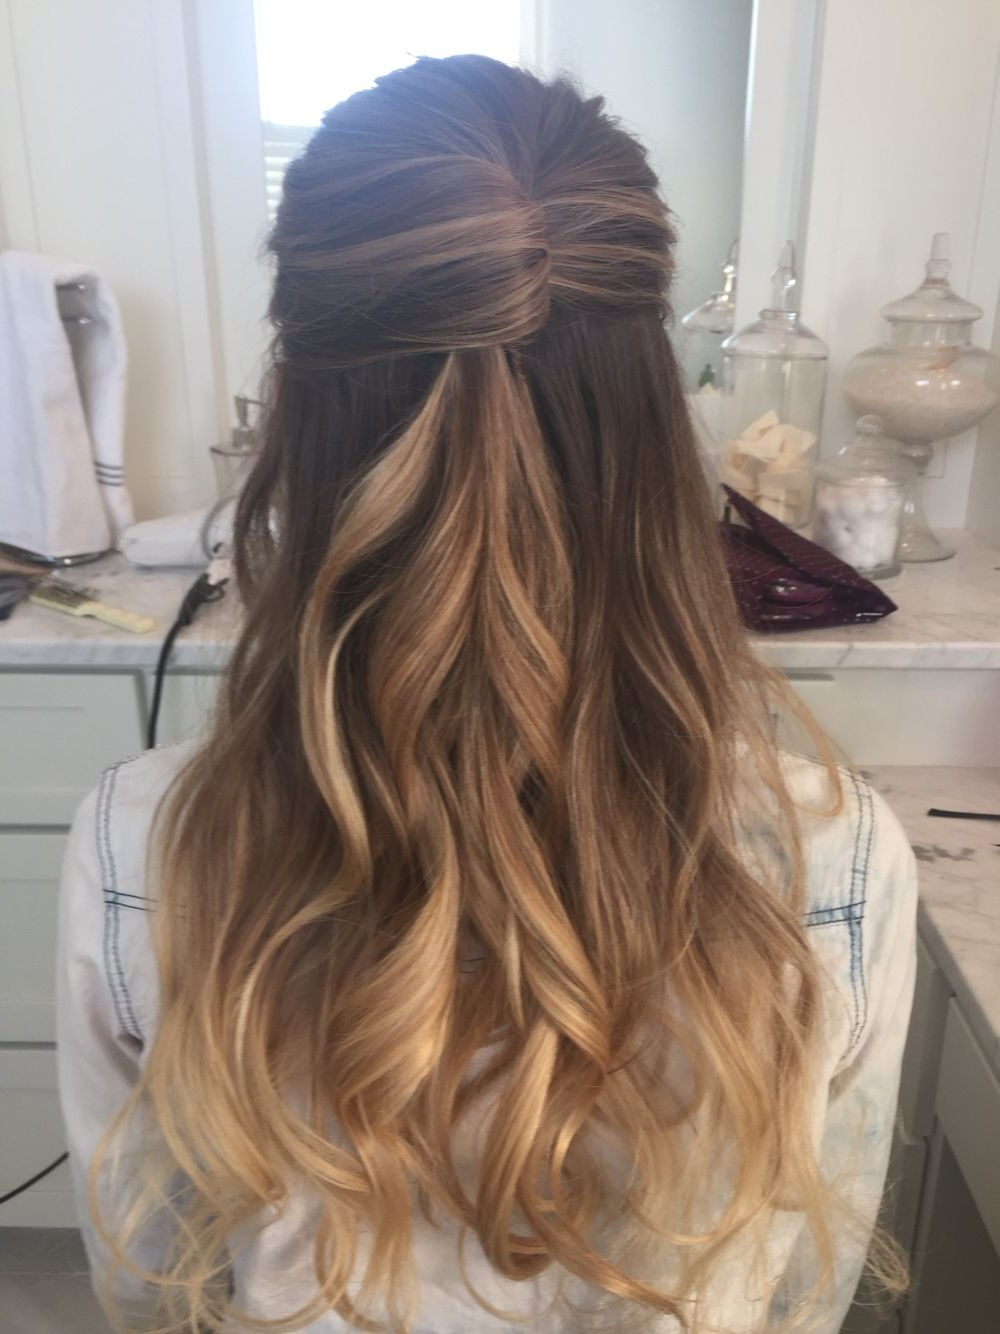 Wedding Hairstyles For Long (View 18 of 20)